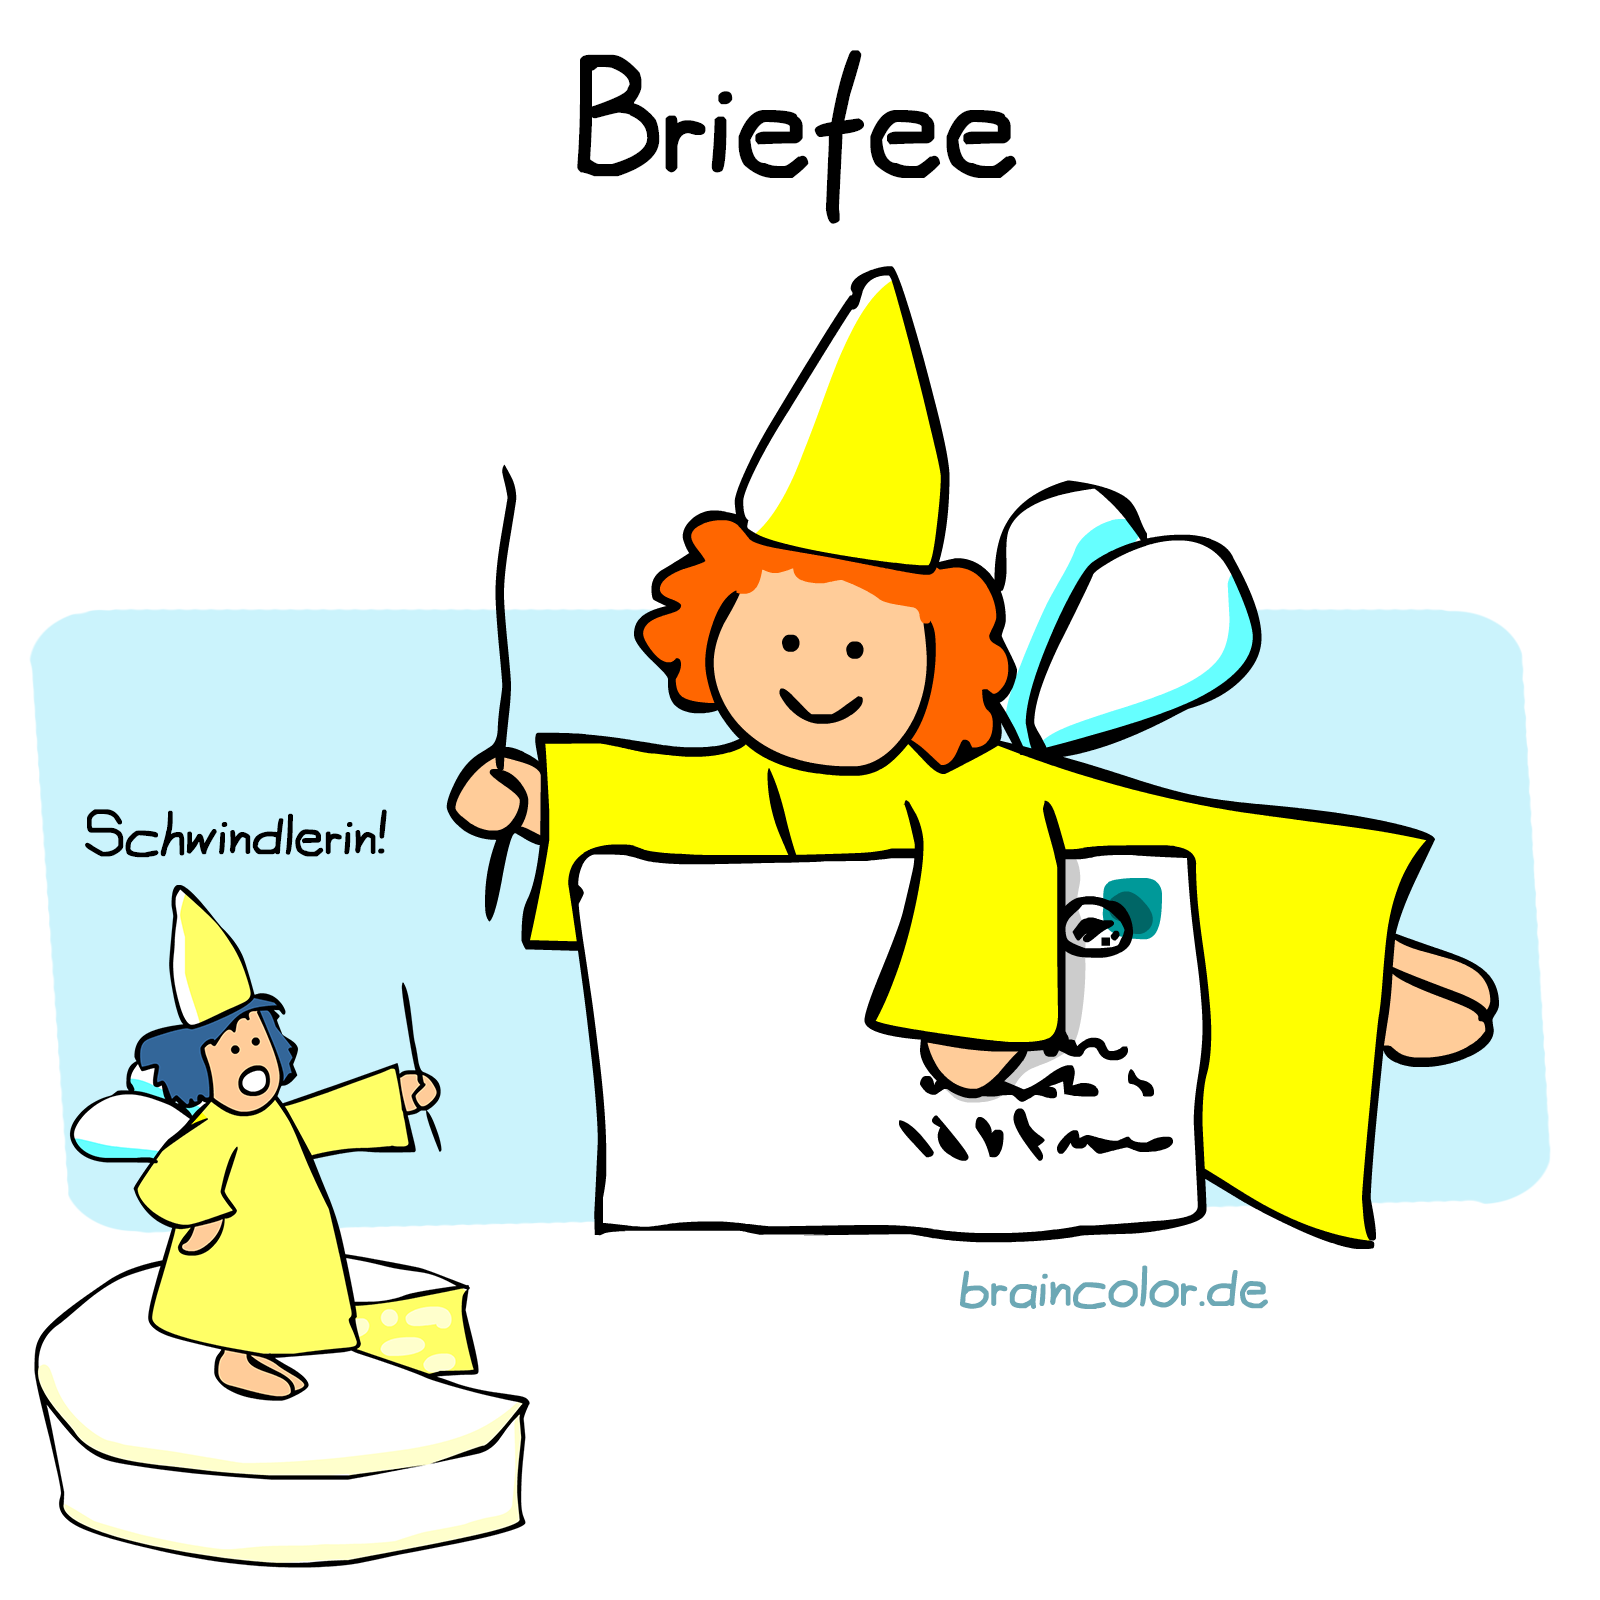 briefee